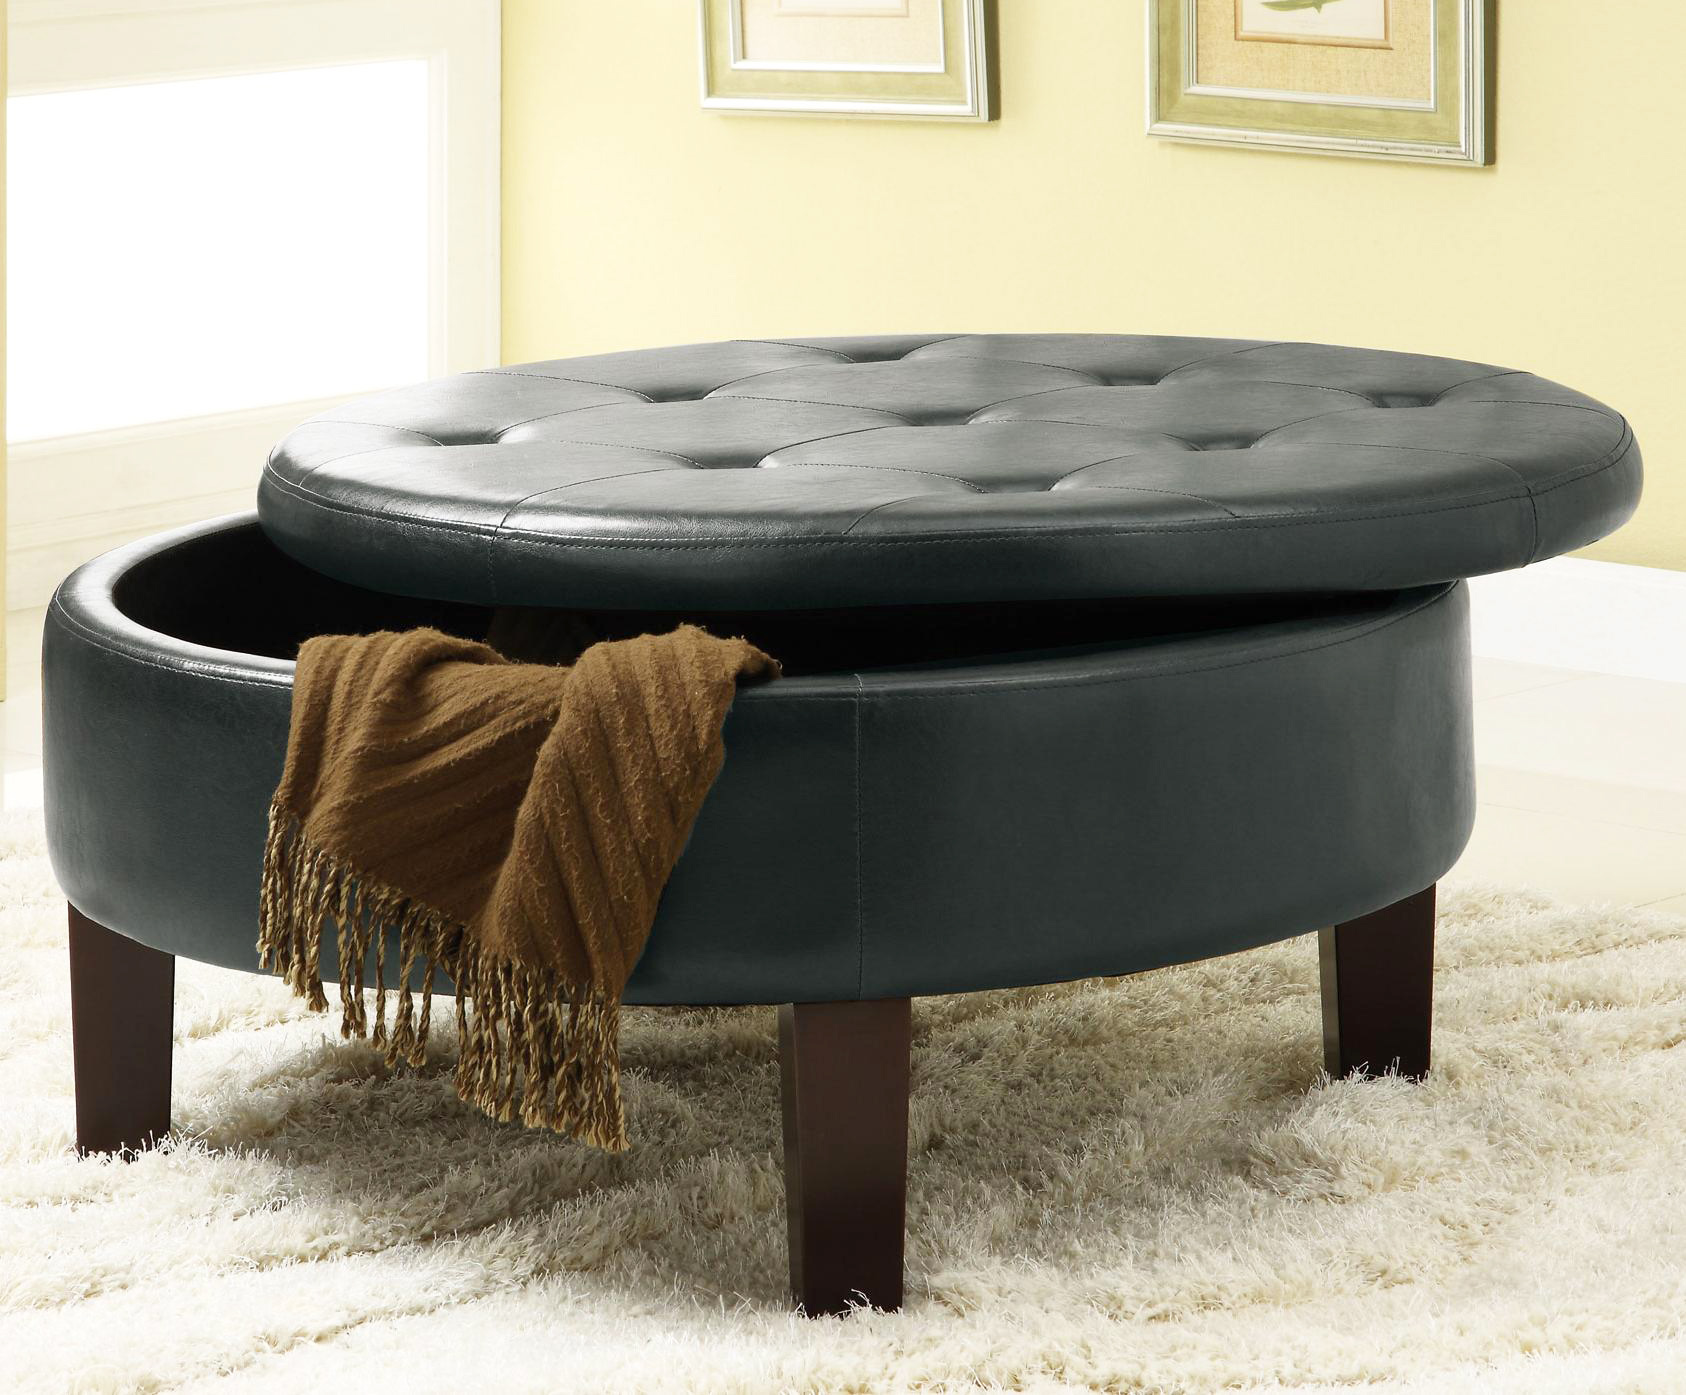 Soft Coffee Table With Storage Tufted Coffee Table For Elegance Creativity And Luxury